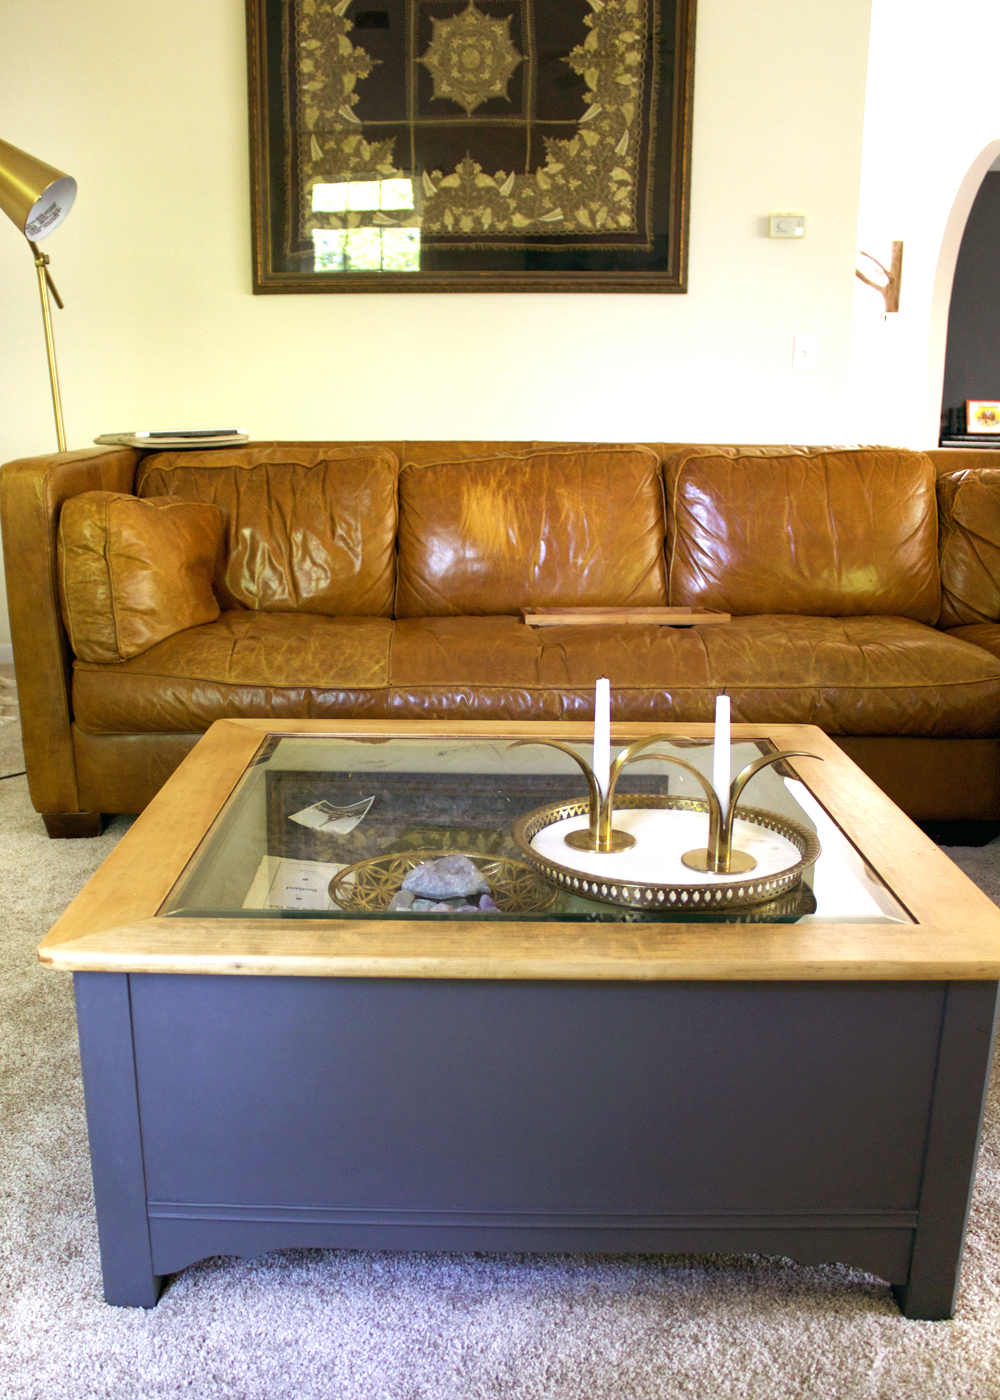 When Should You Purchase Thrift Store Furniture? 4 Questions to Ask Yourself